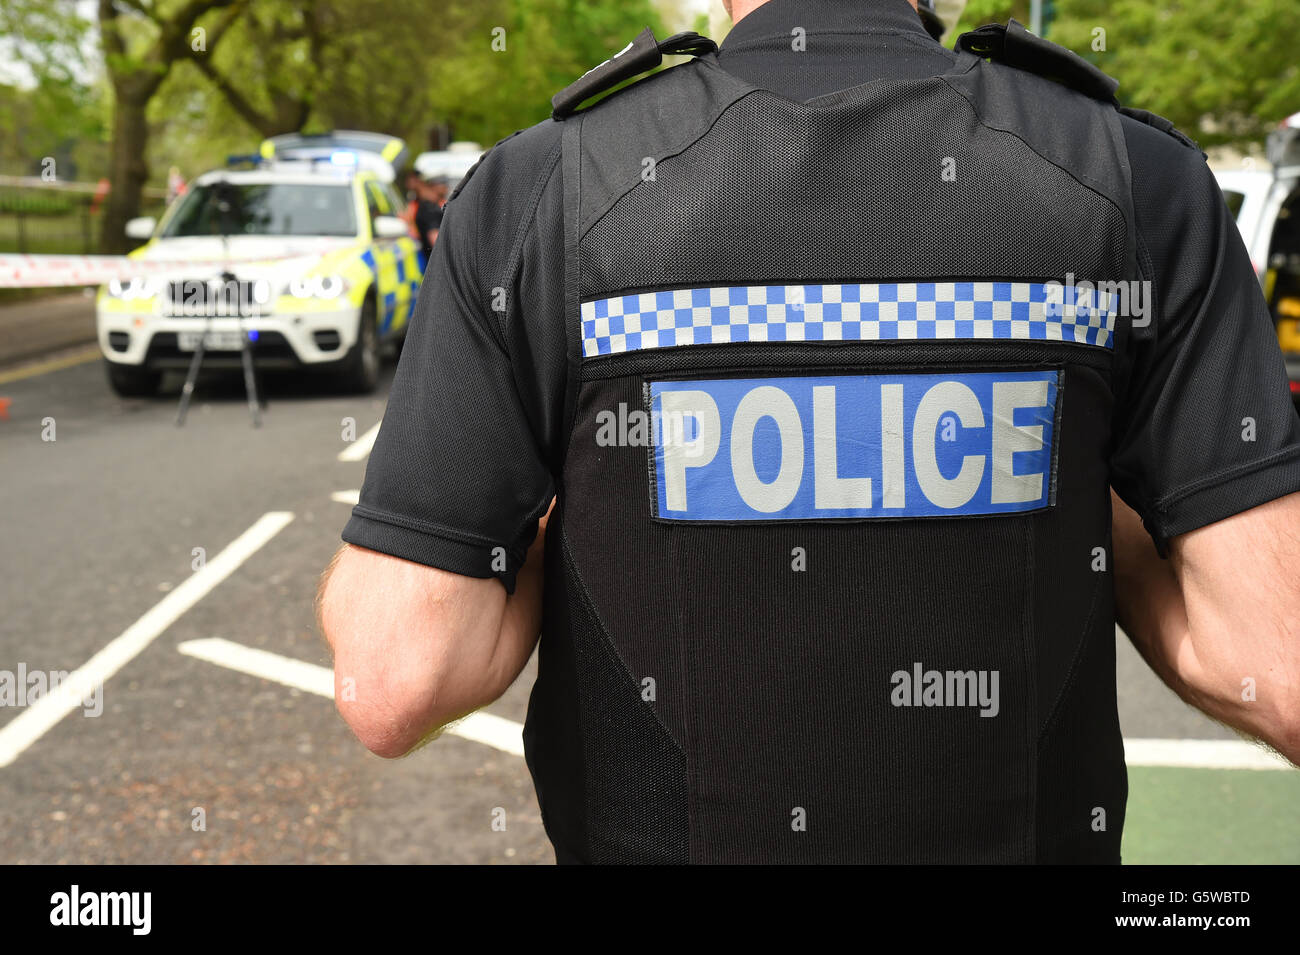 Police officer at the scene of a road traffic accident. - Stock Image